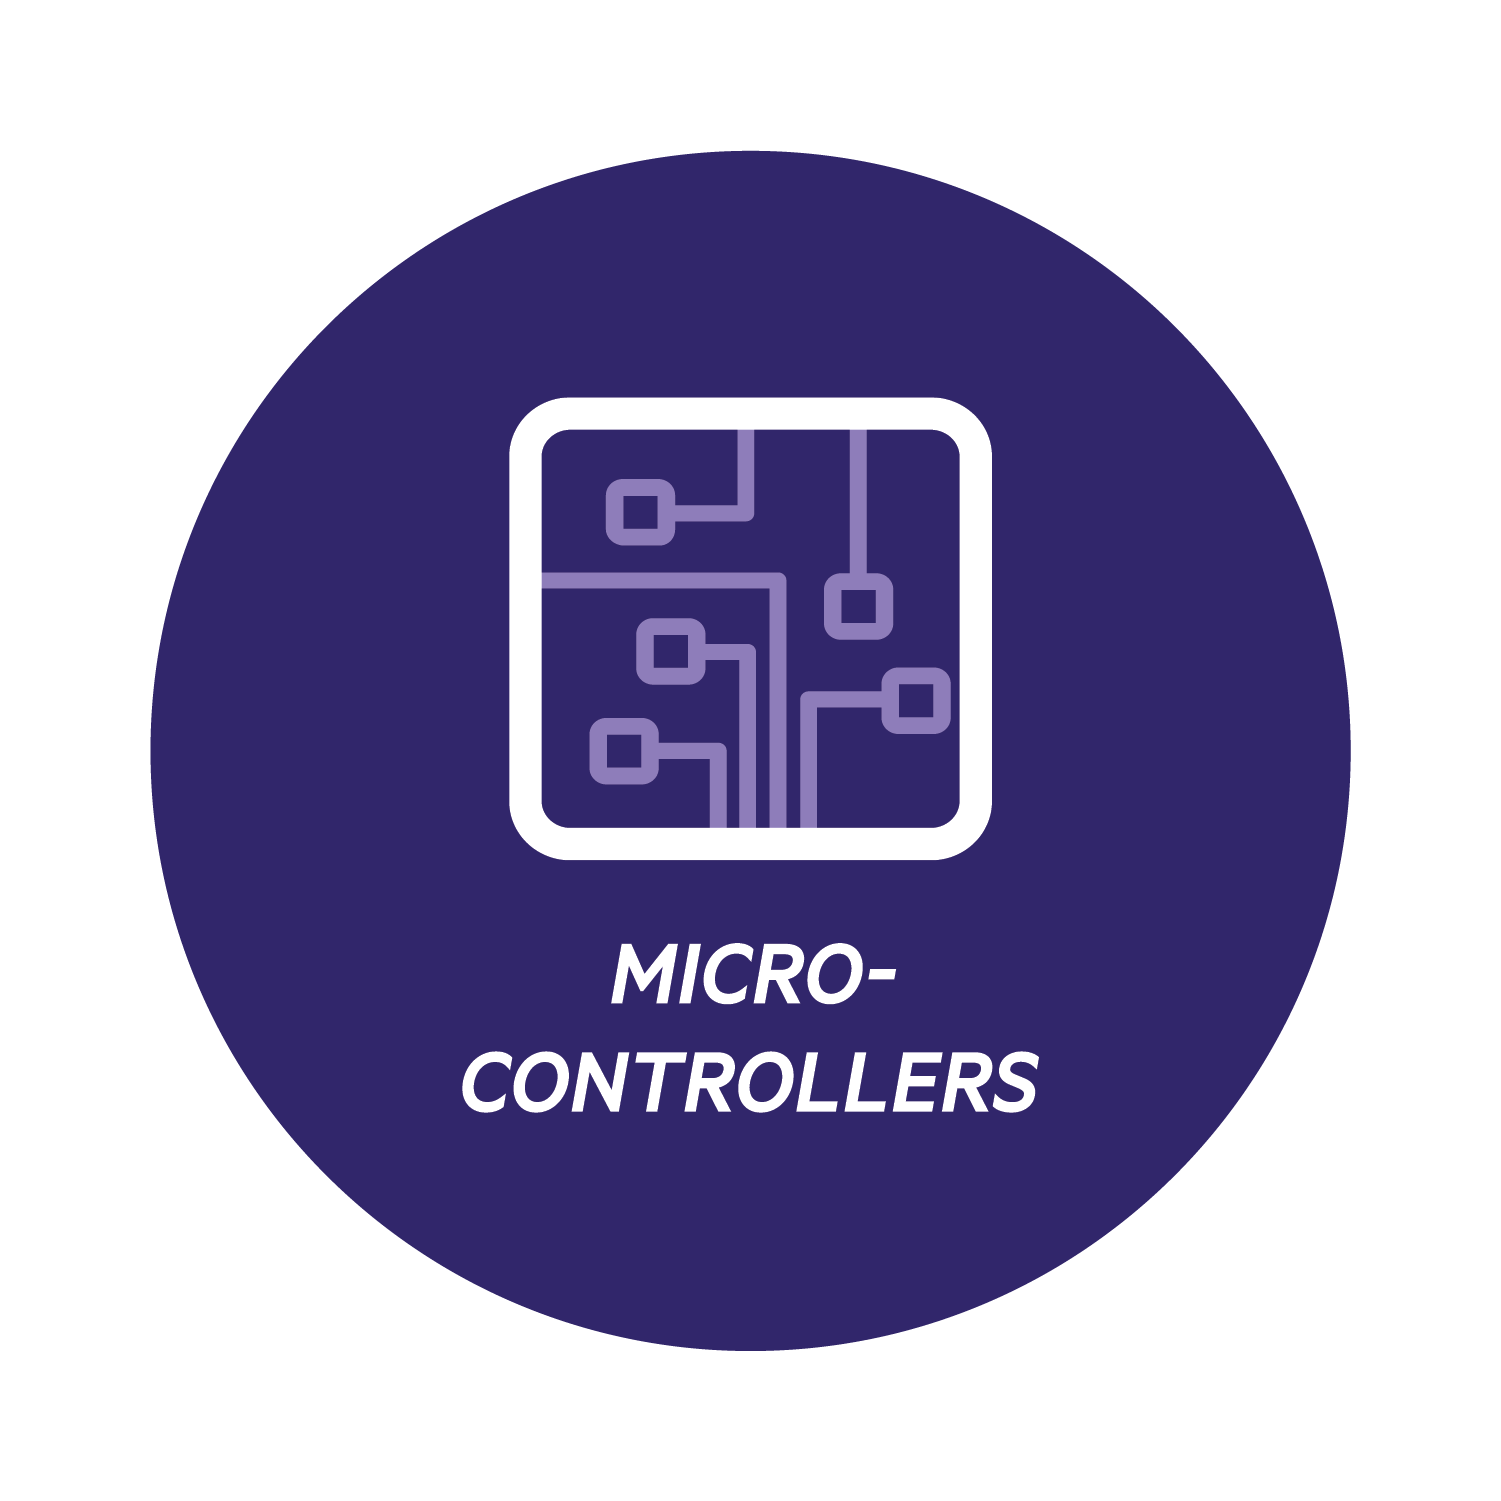 icon_microcontrollers